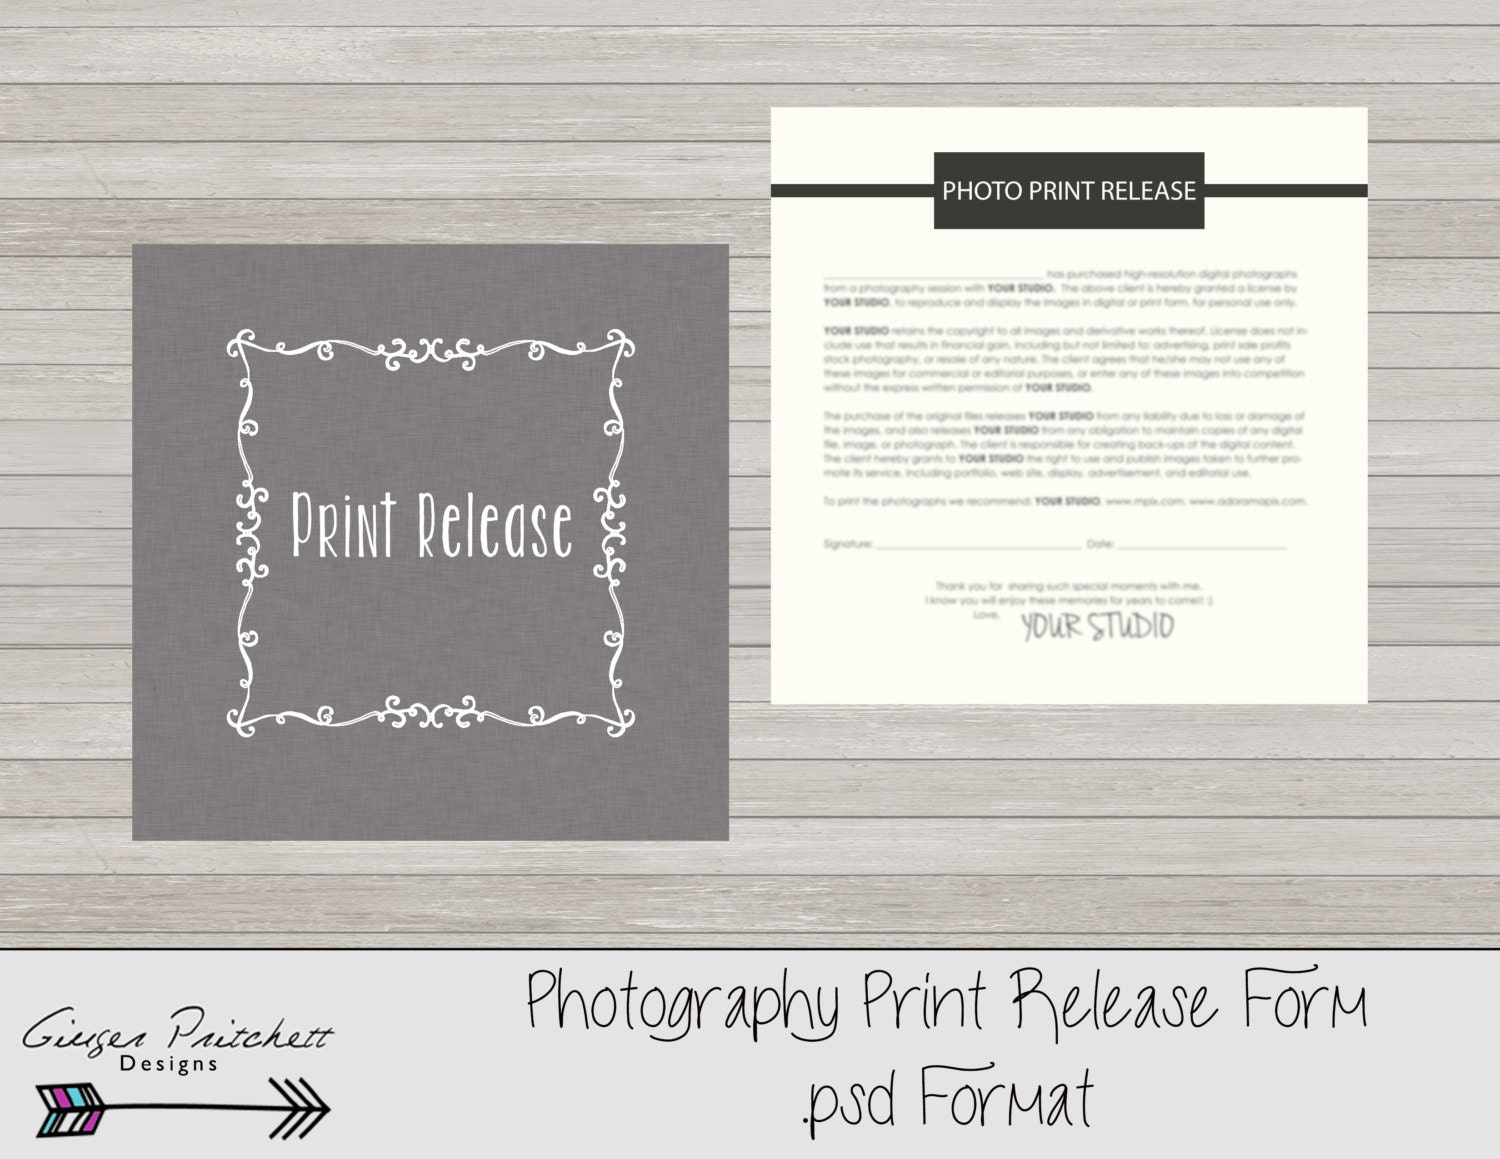 Copyrights release form print release form photography print – Print Release Form